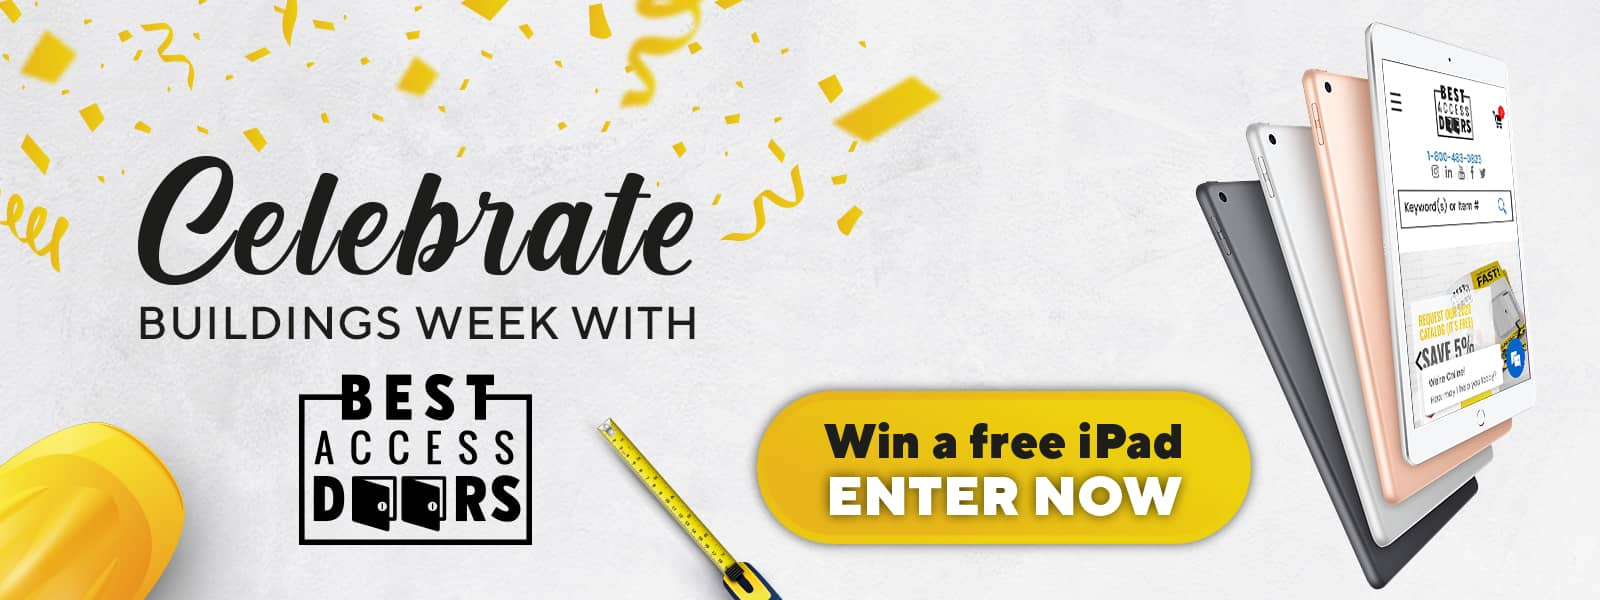 Celebrate the Buildings Week 2020 with Best Access Doors. Get the chance to win a free iPad by simply entering our event now!